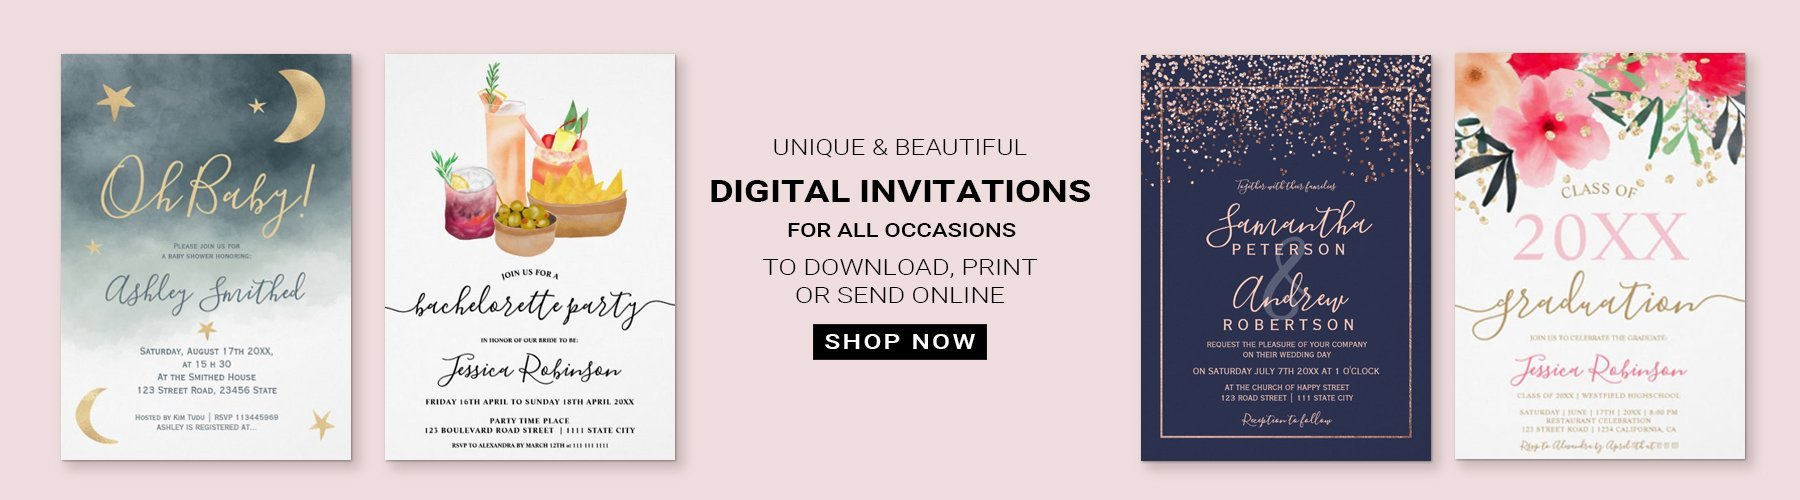 Digital printable invitations